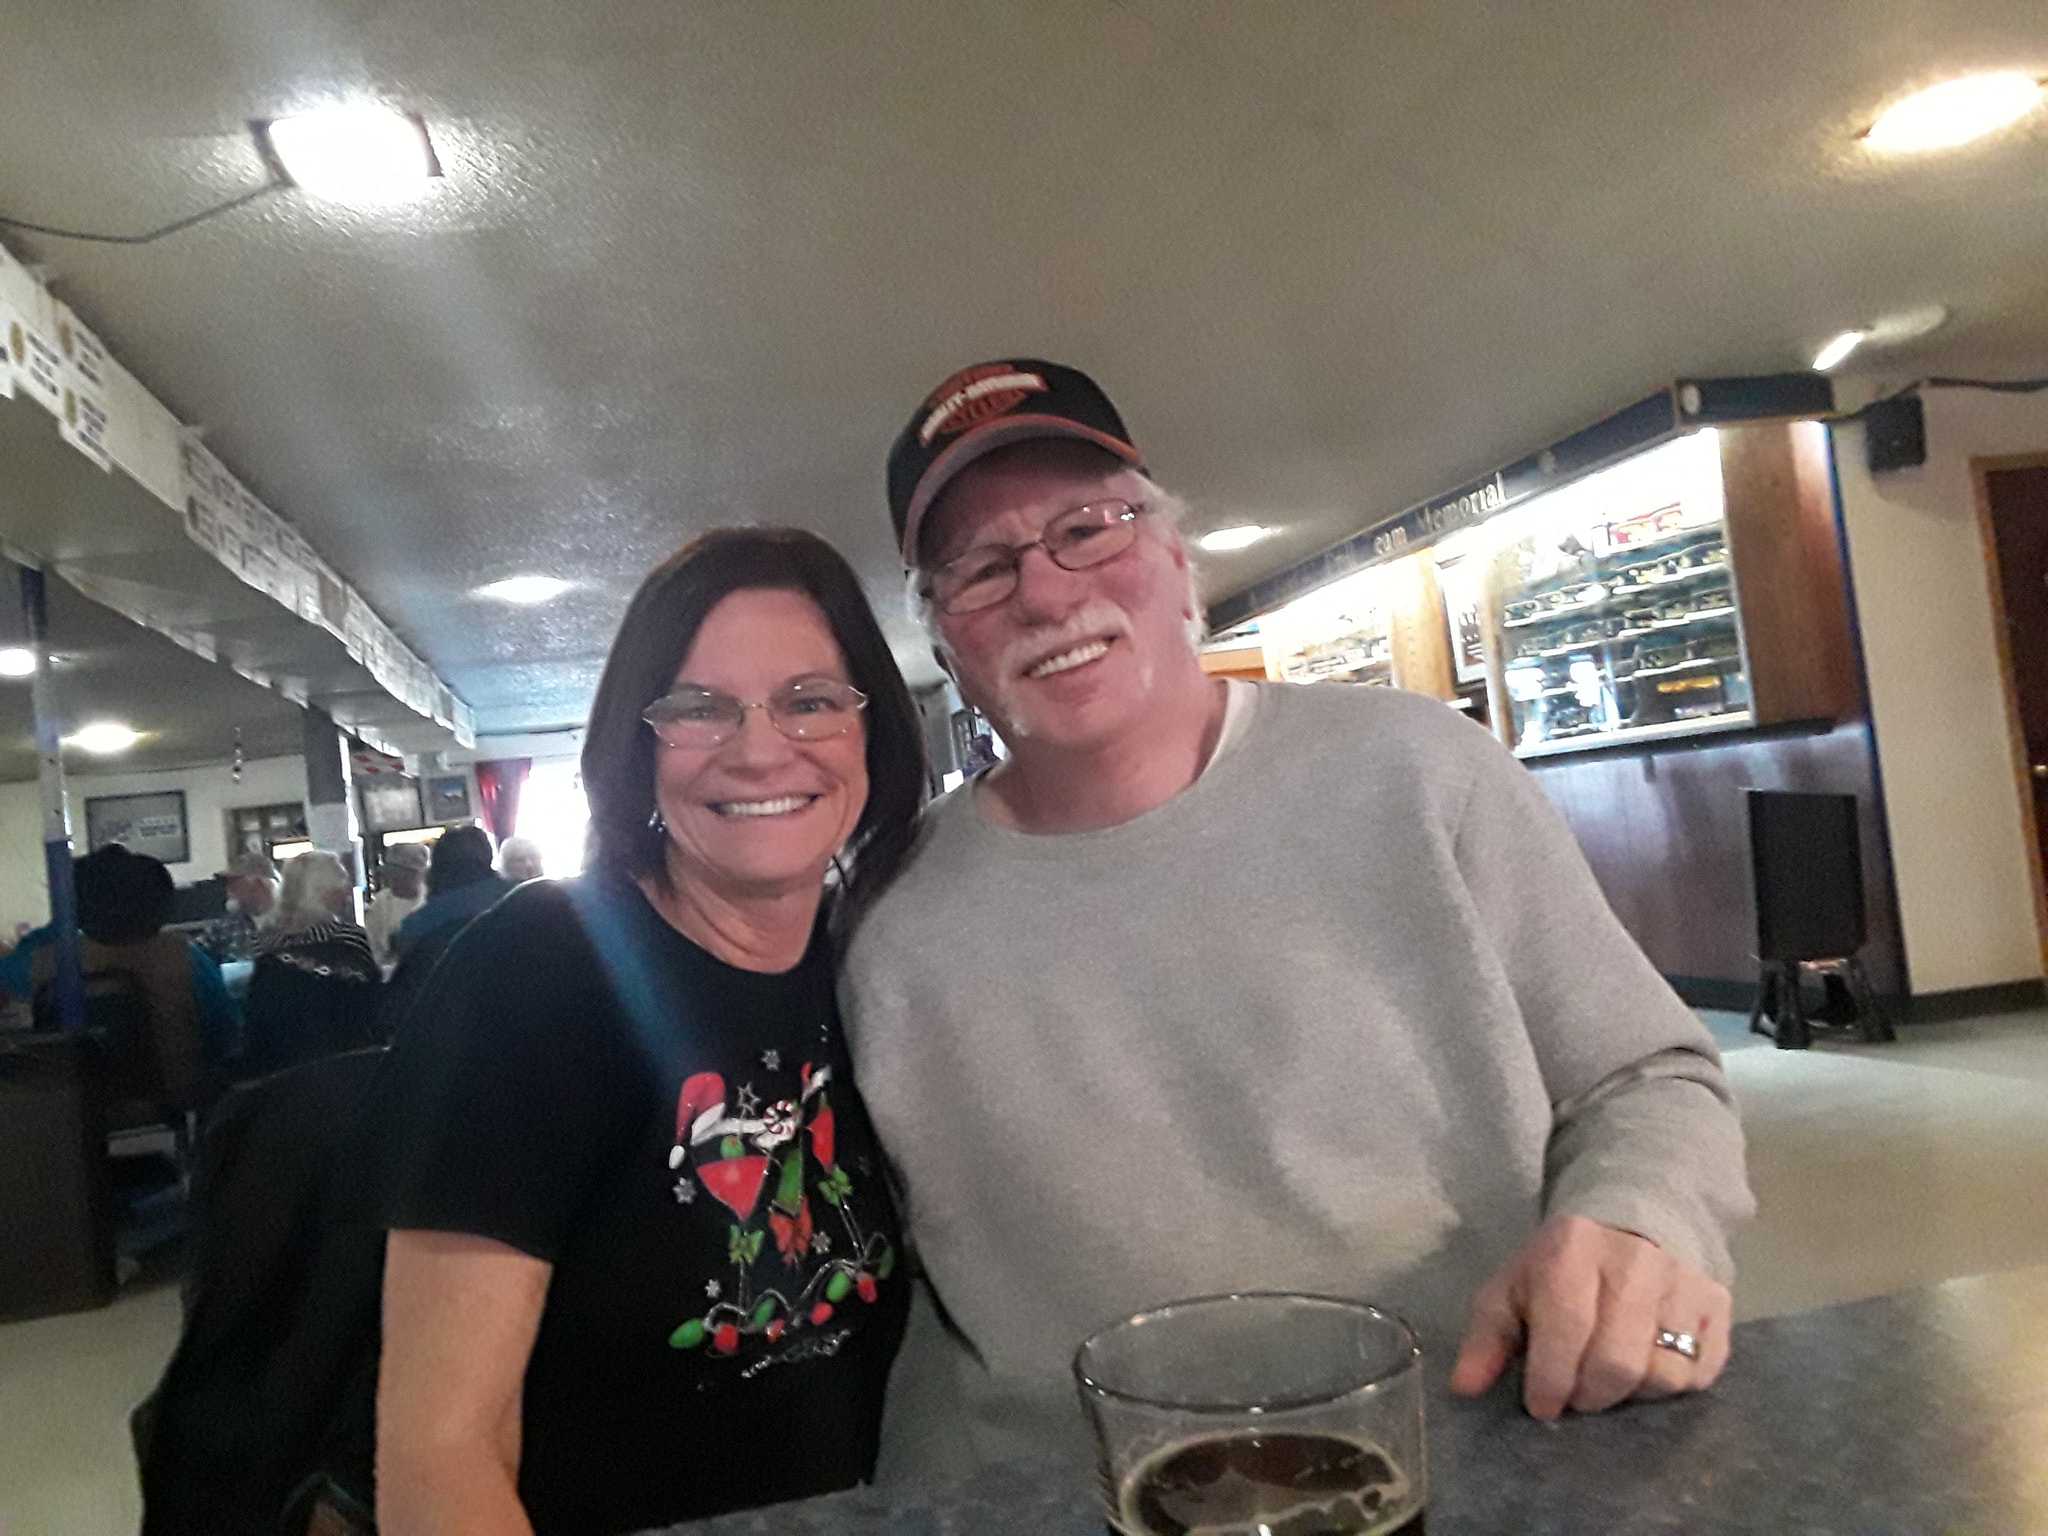 Brenda Aholt and her husband have been married for four years.